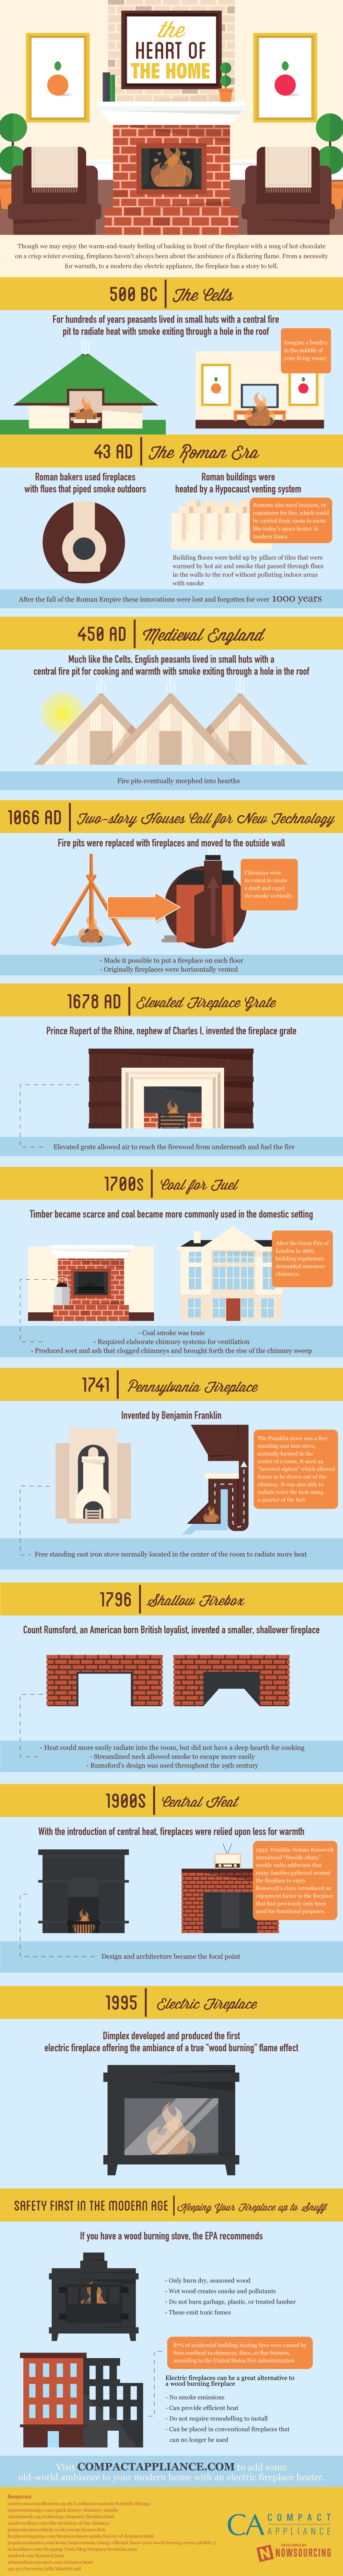 Evolution Of The Fireplace Infographic